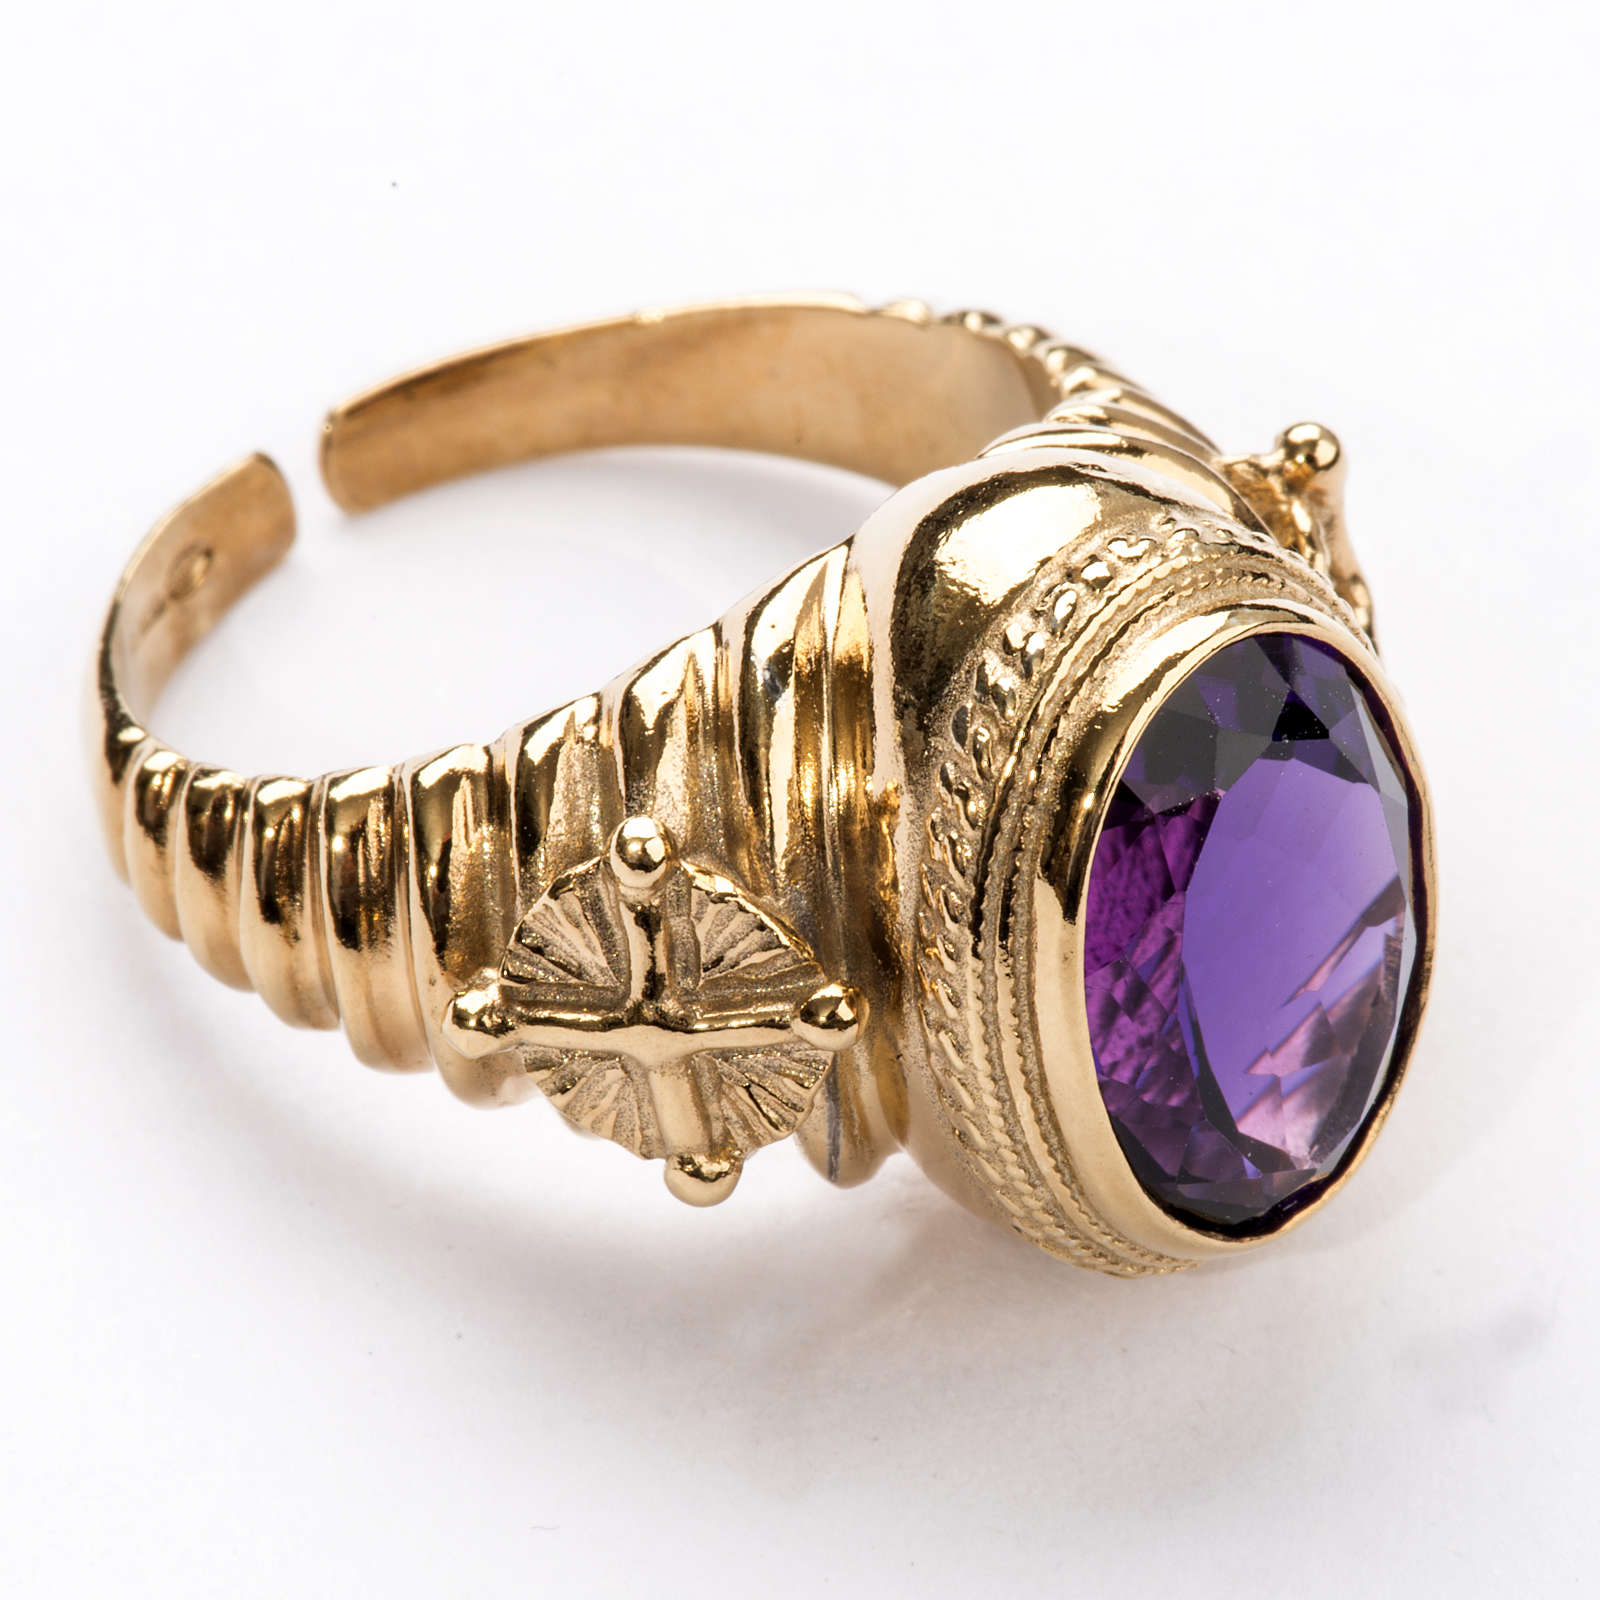 Ecclesiastical Ring made of silver 925 with Amethyst 3